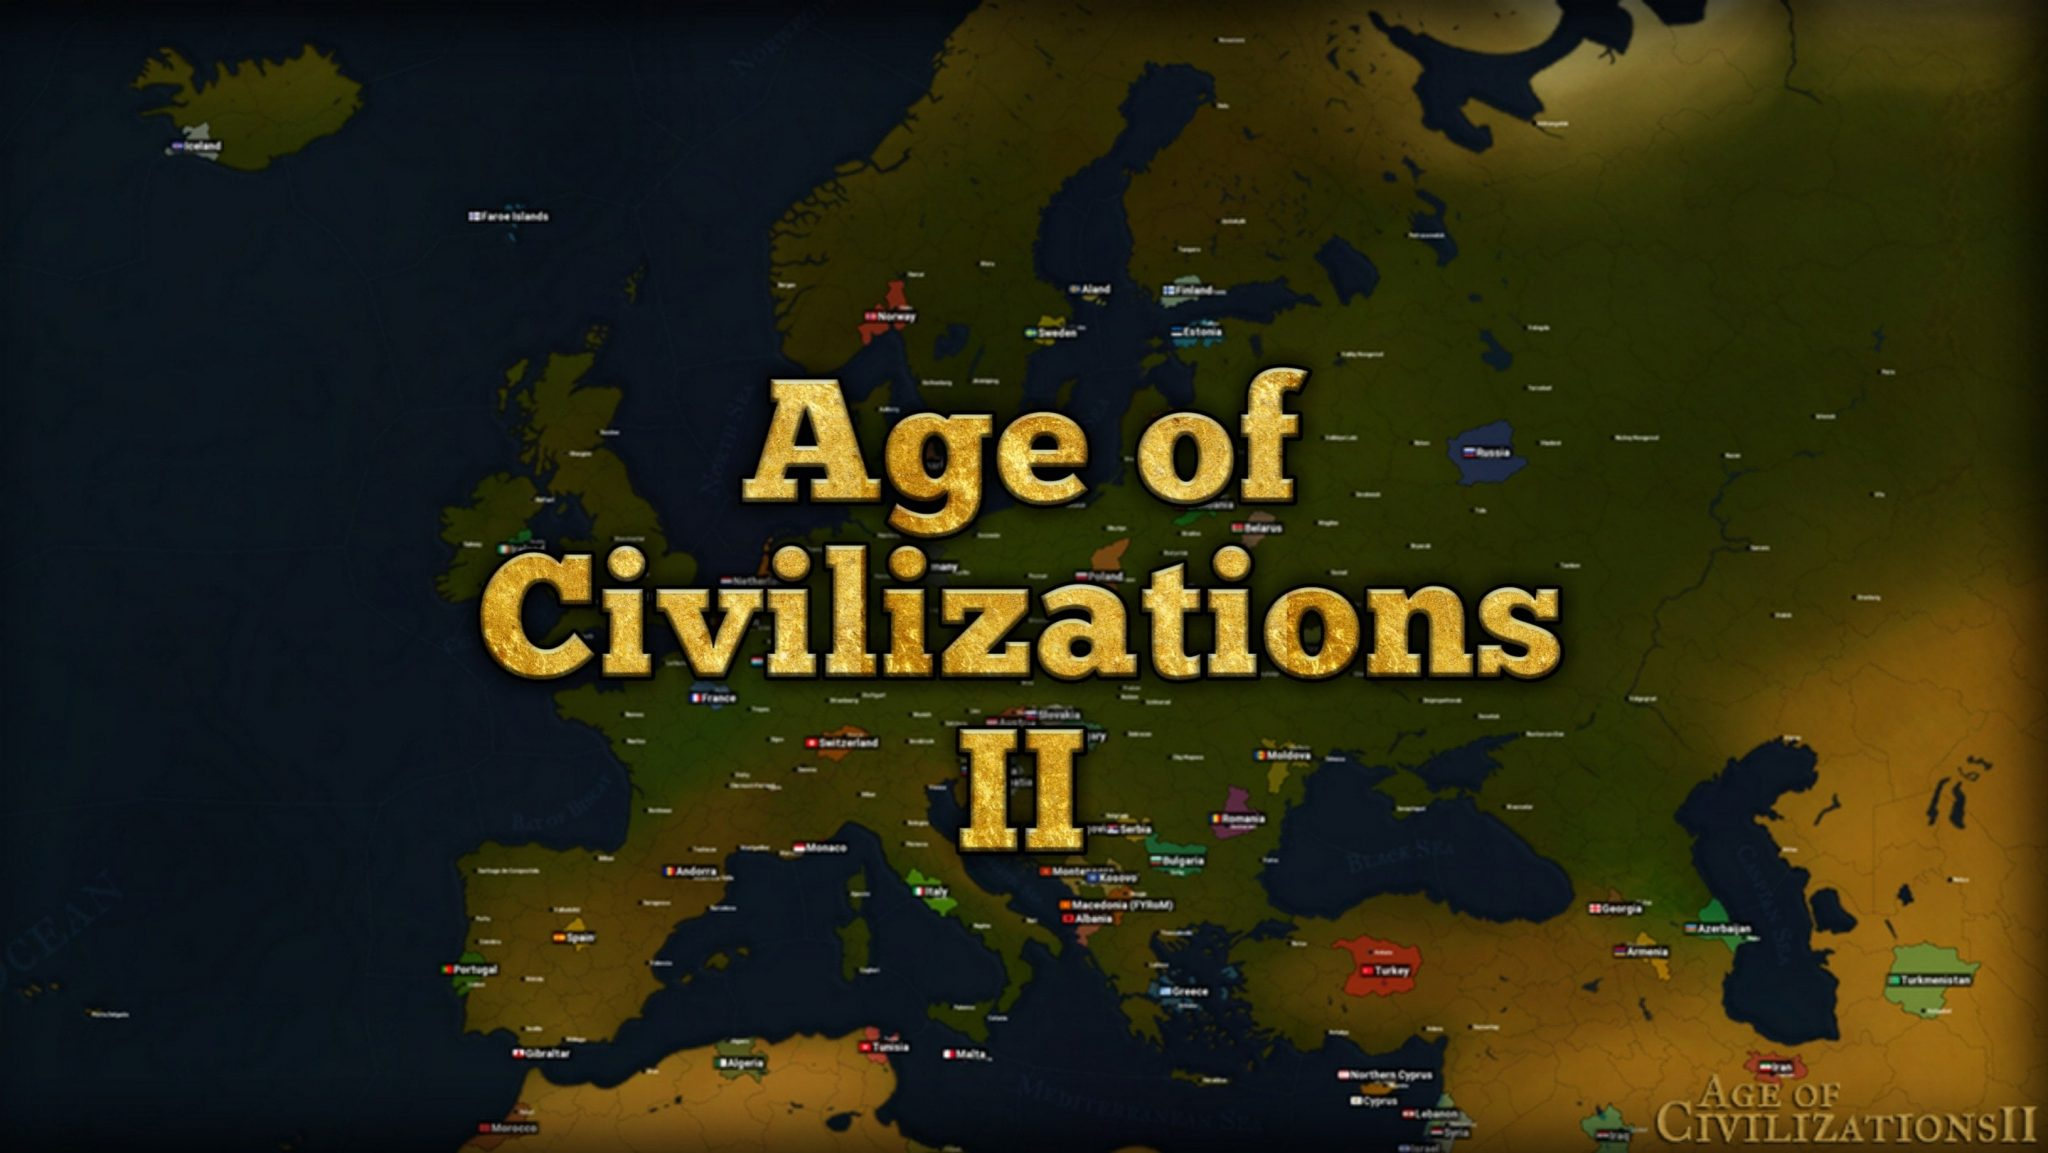 Download Age of Civilizations II on PC with BlueStacks